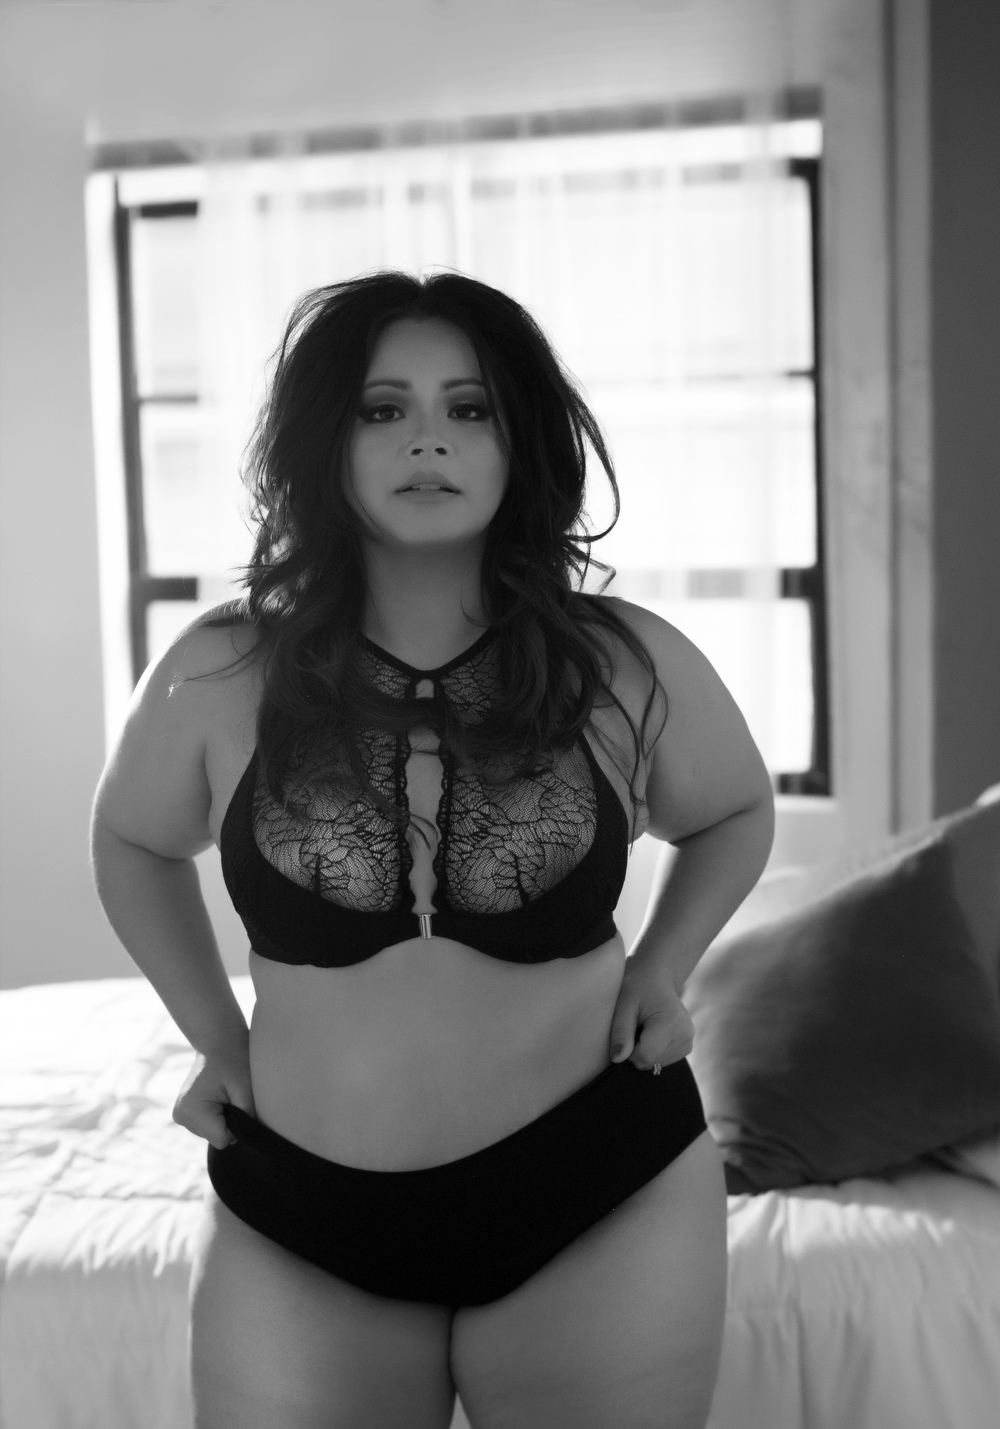 DC boudoir photographer plus sized full figure lane bryant lingerie curvy atlanta boudoir